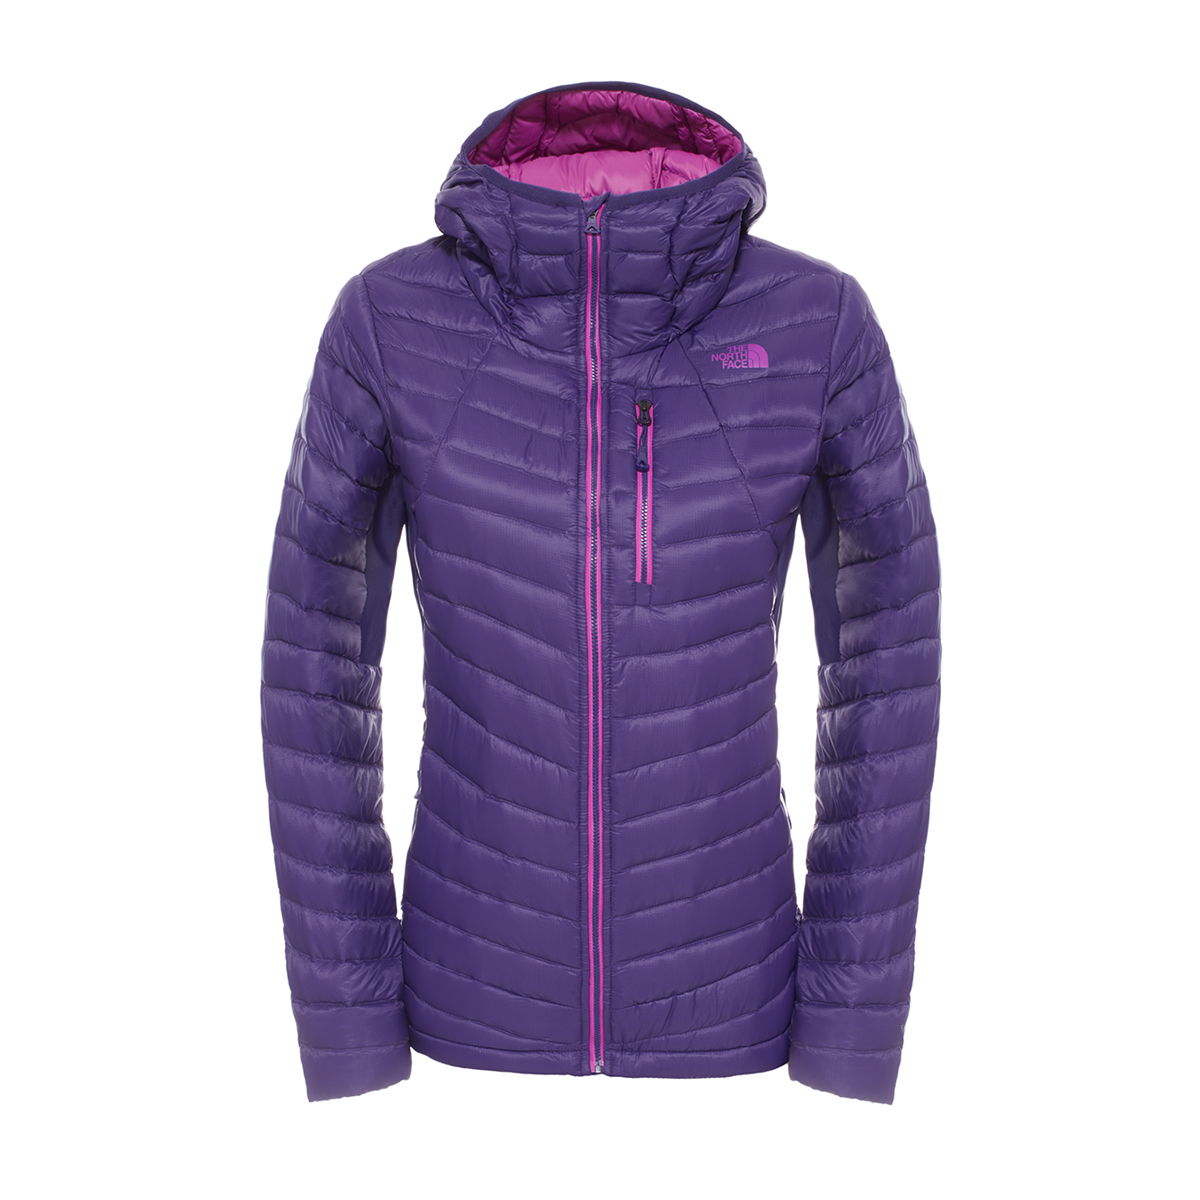 The North Face Low Pro Hybrid Jacket Women S Insulating